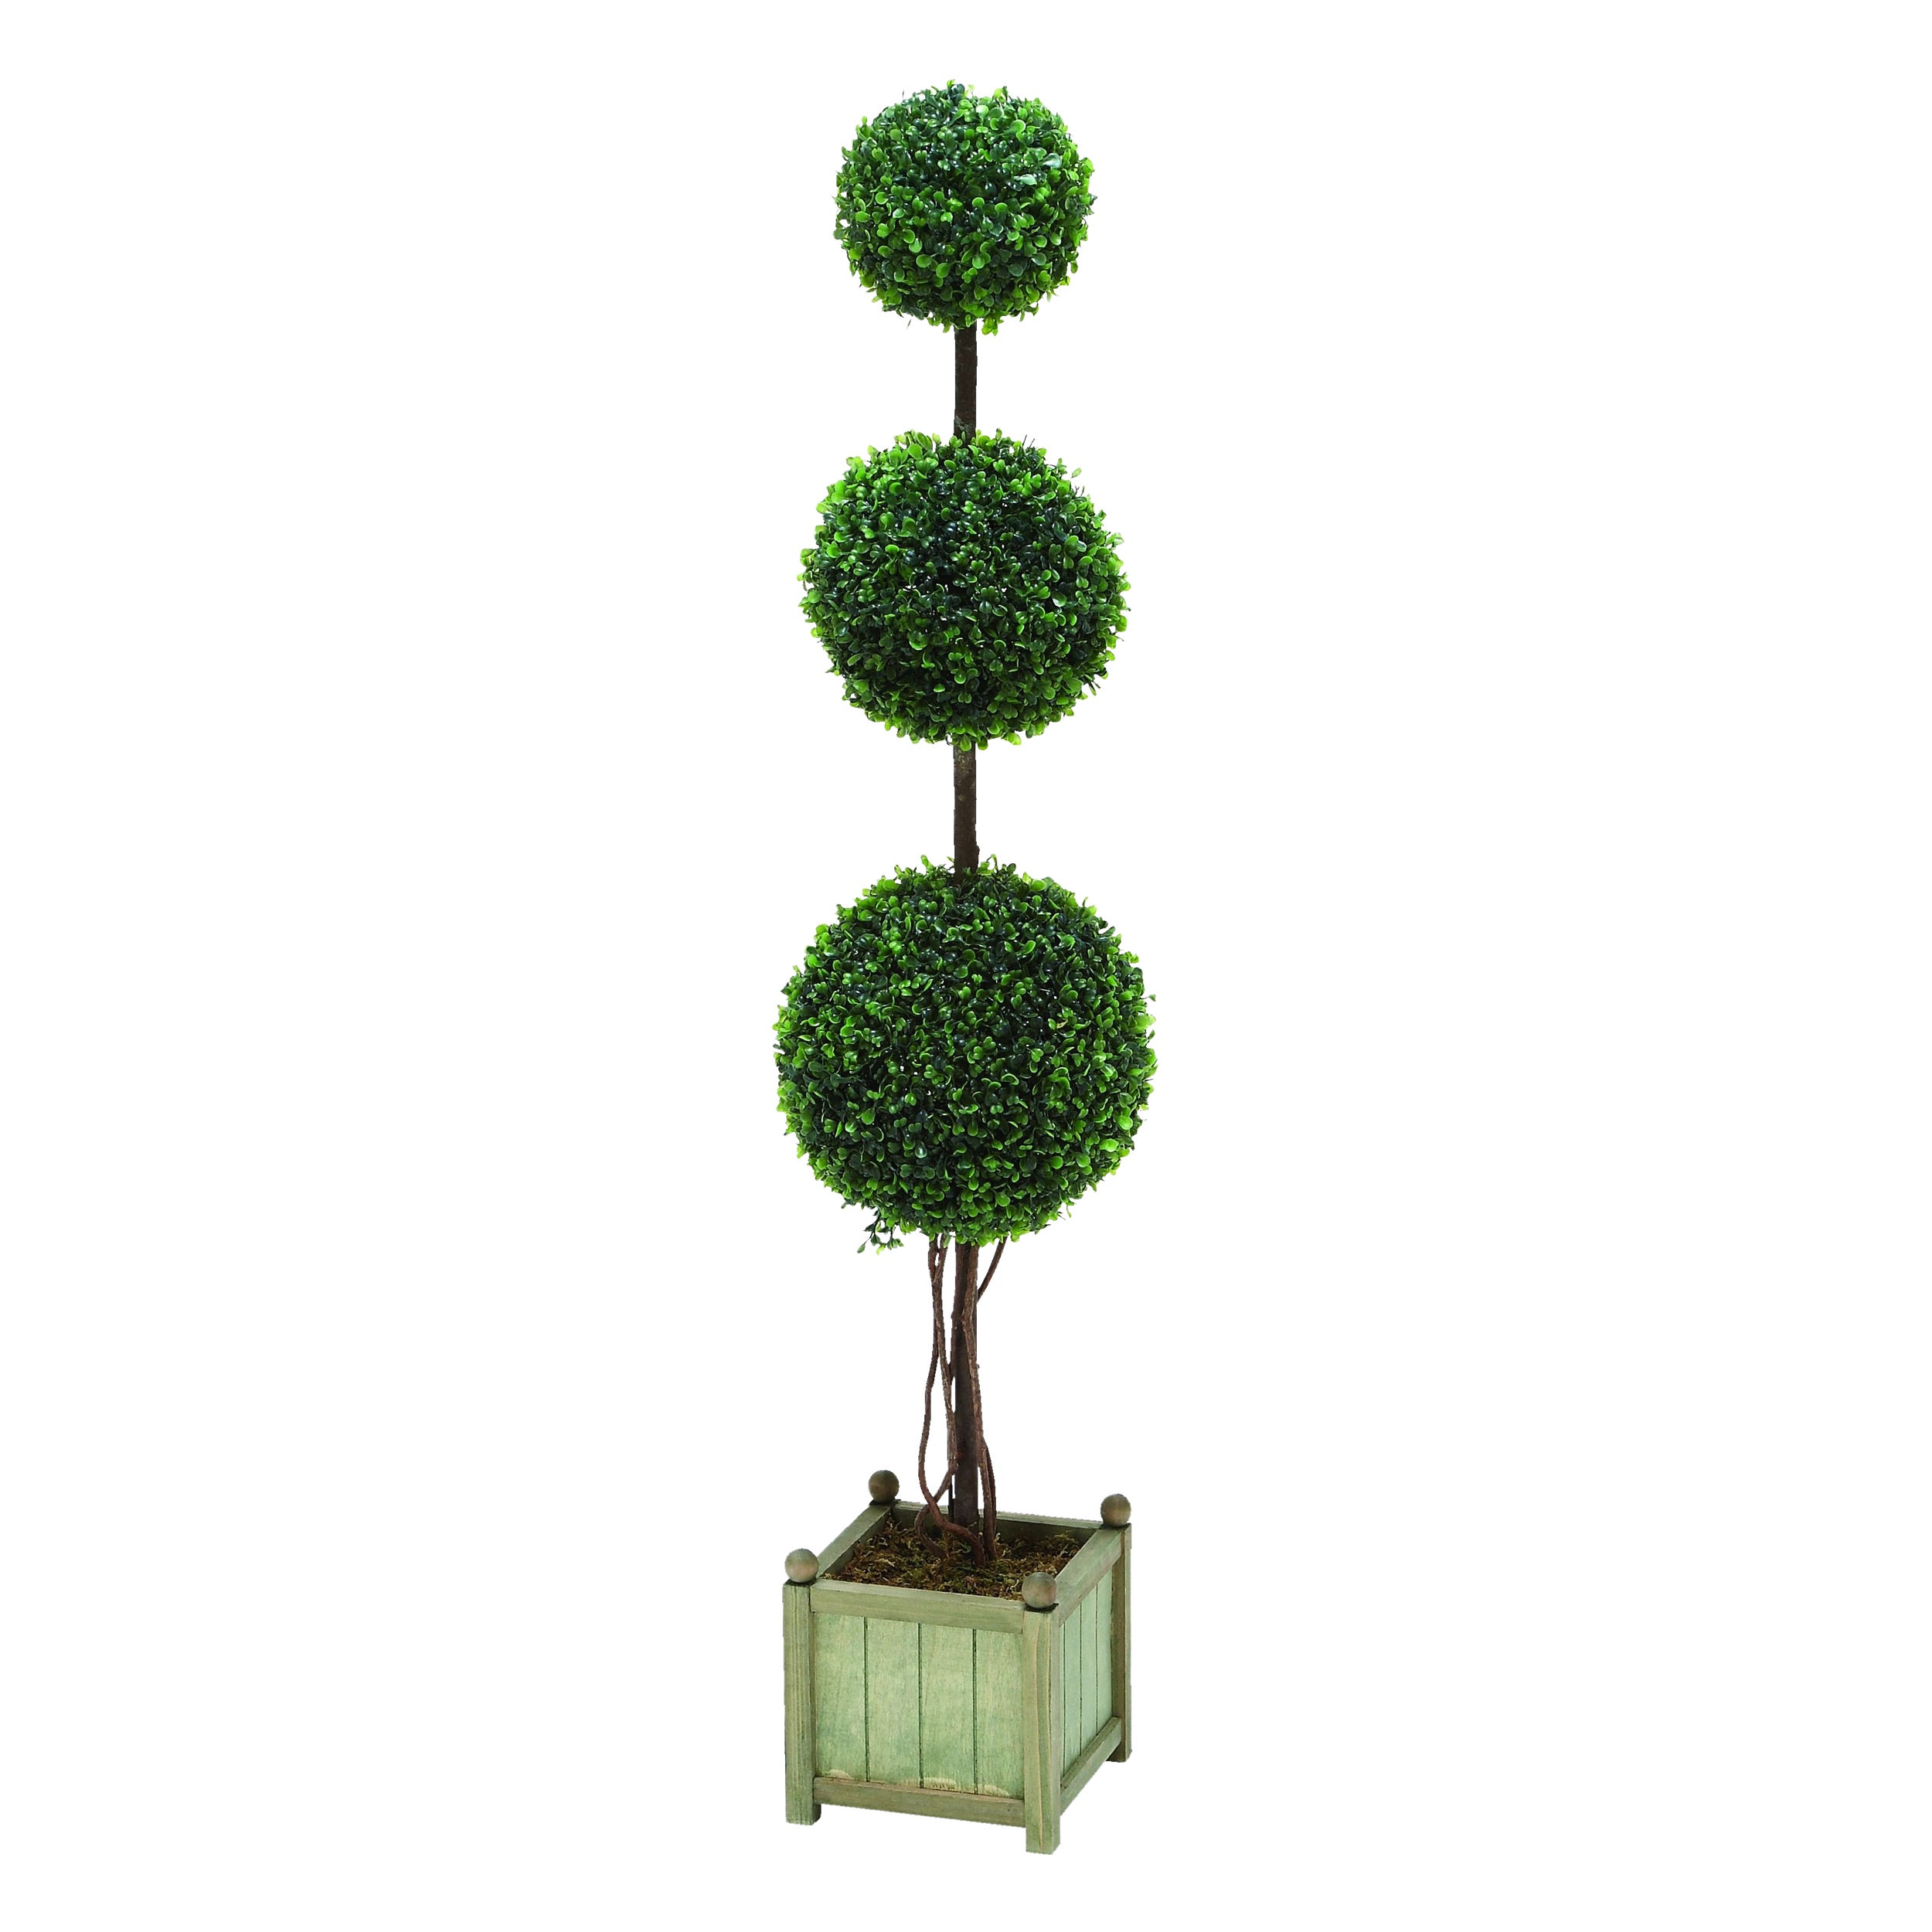 Trueshire Potted Artificial Topiary